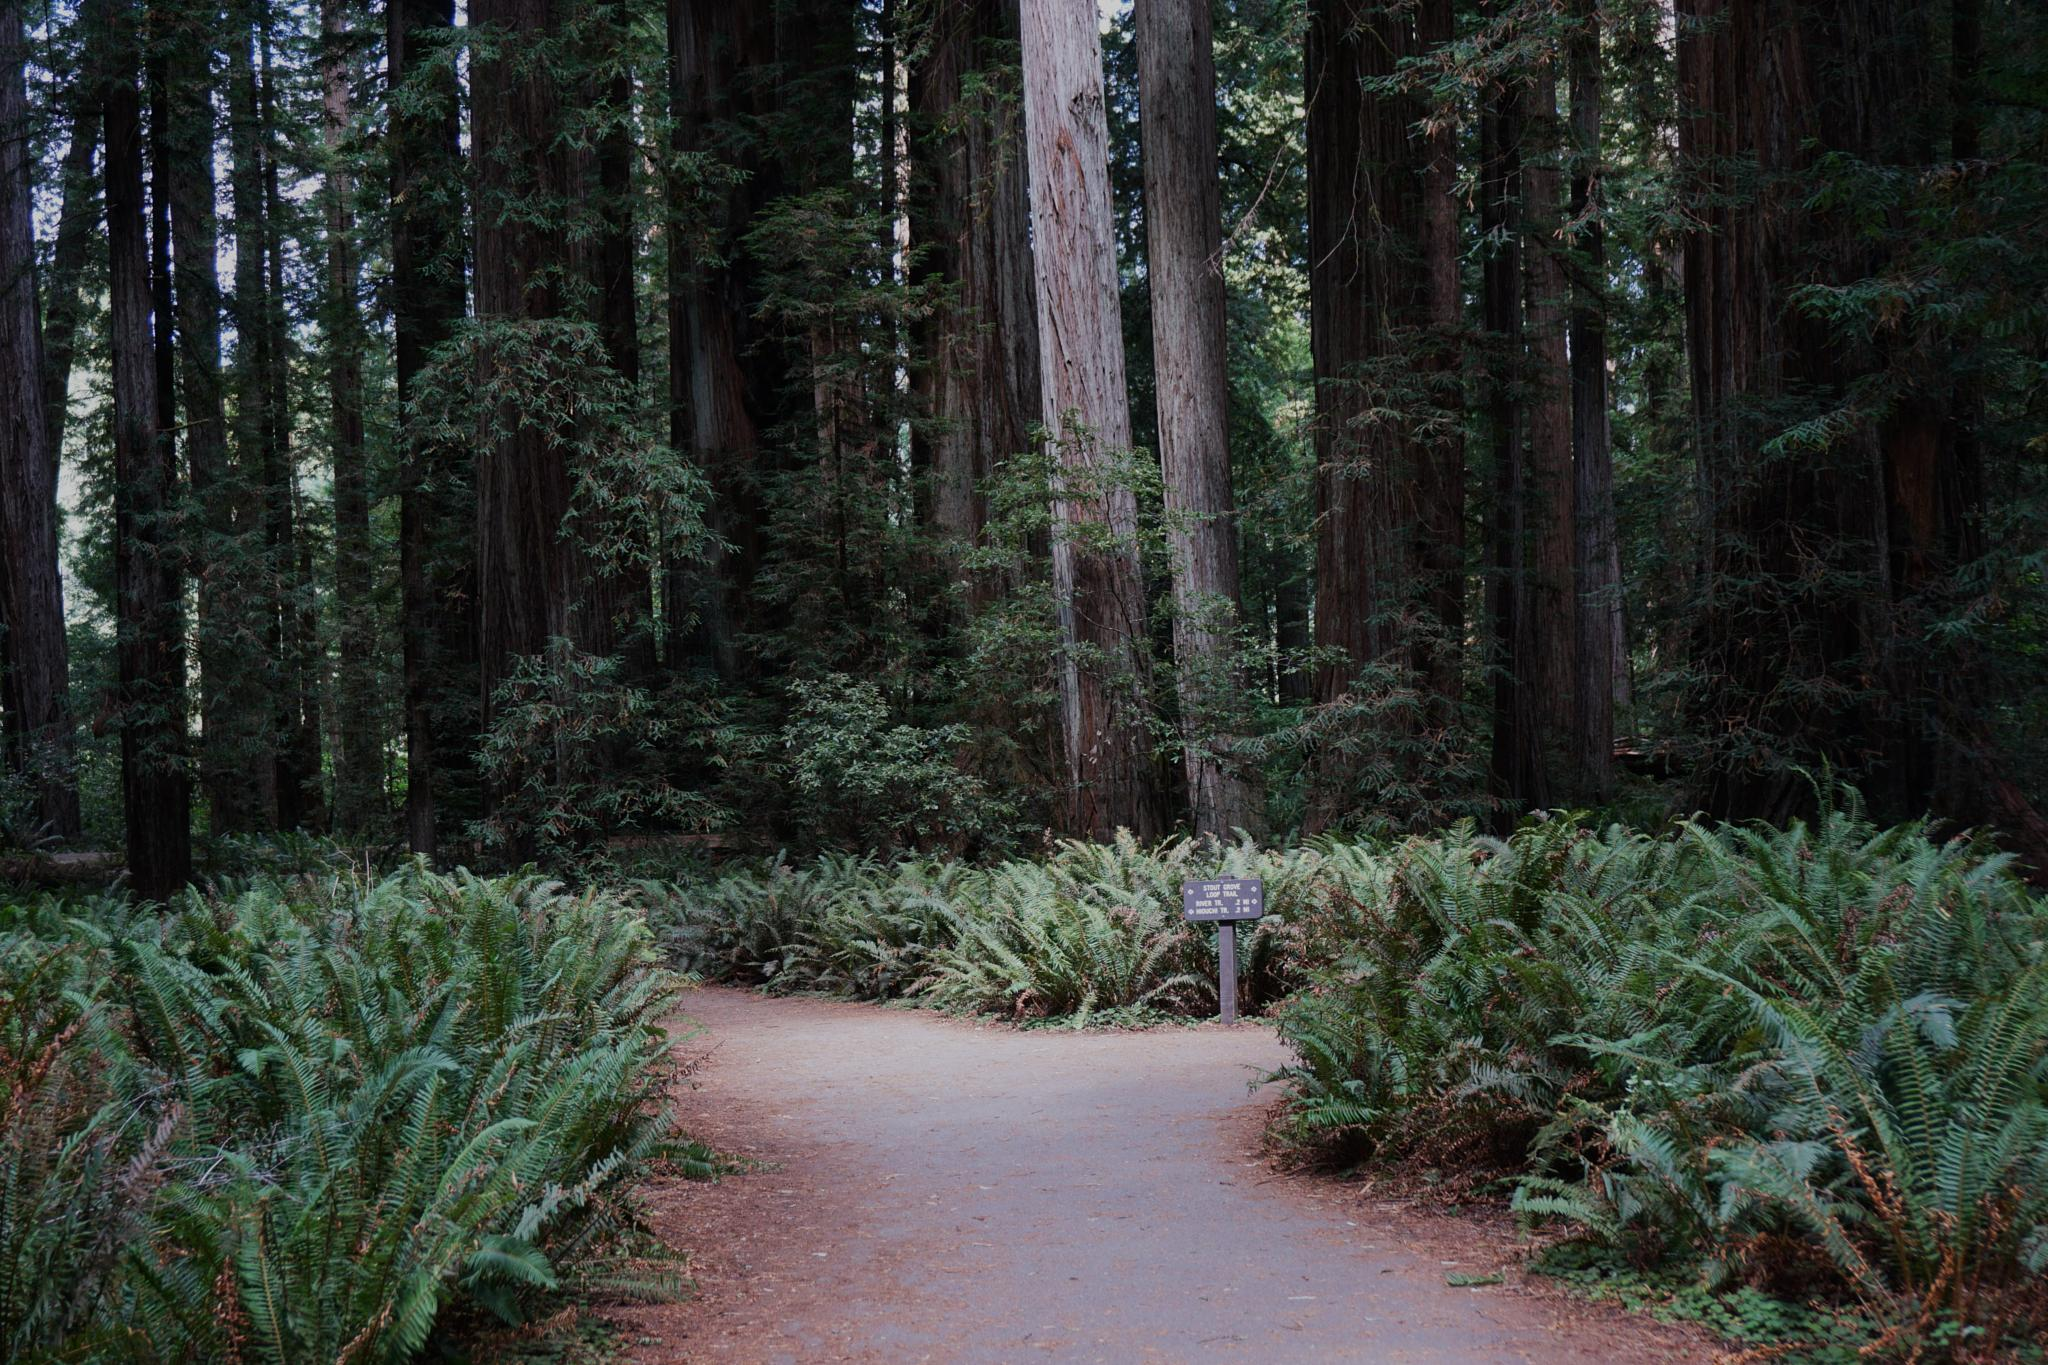 A Road in Redwoods by Gina Hammon